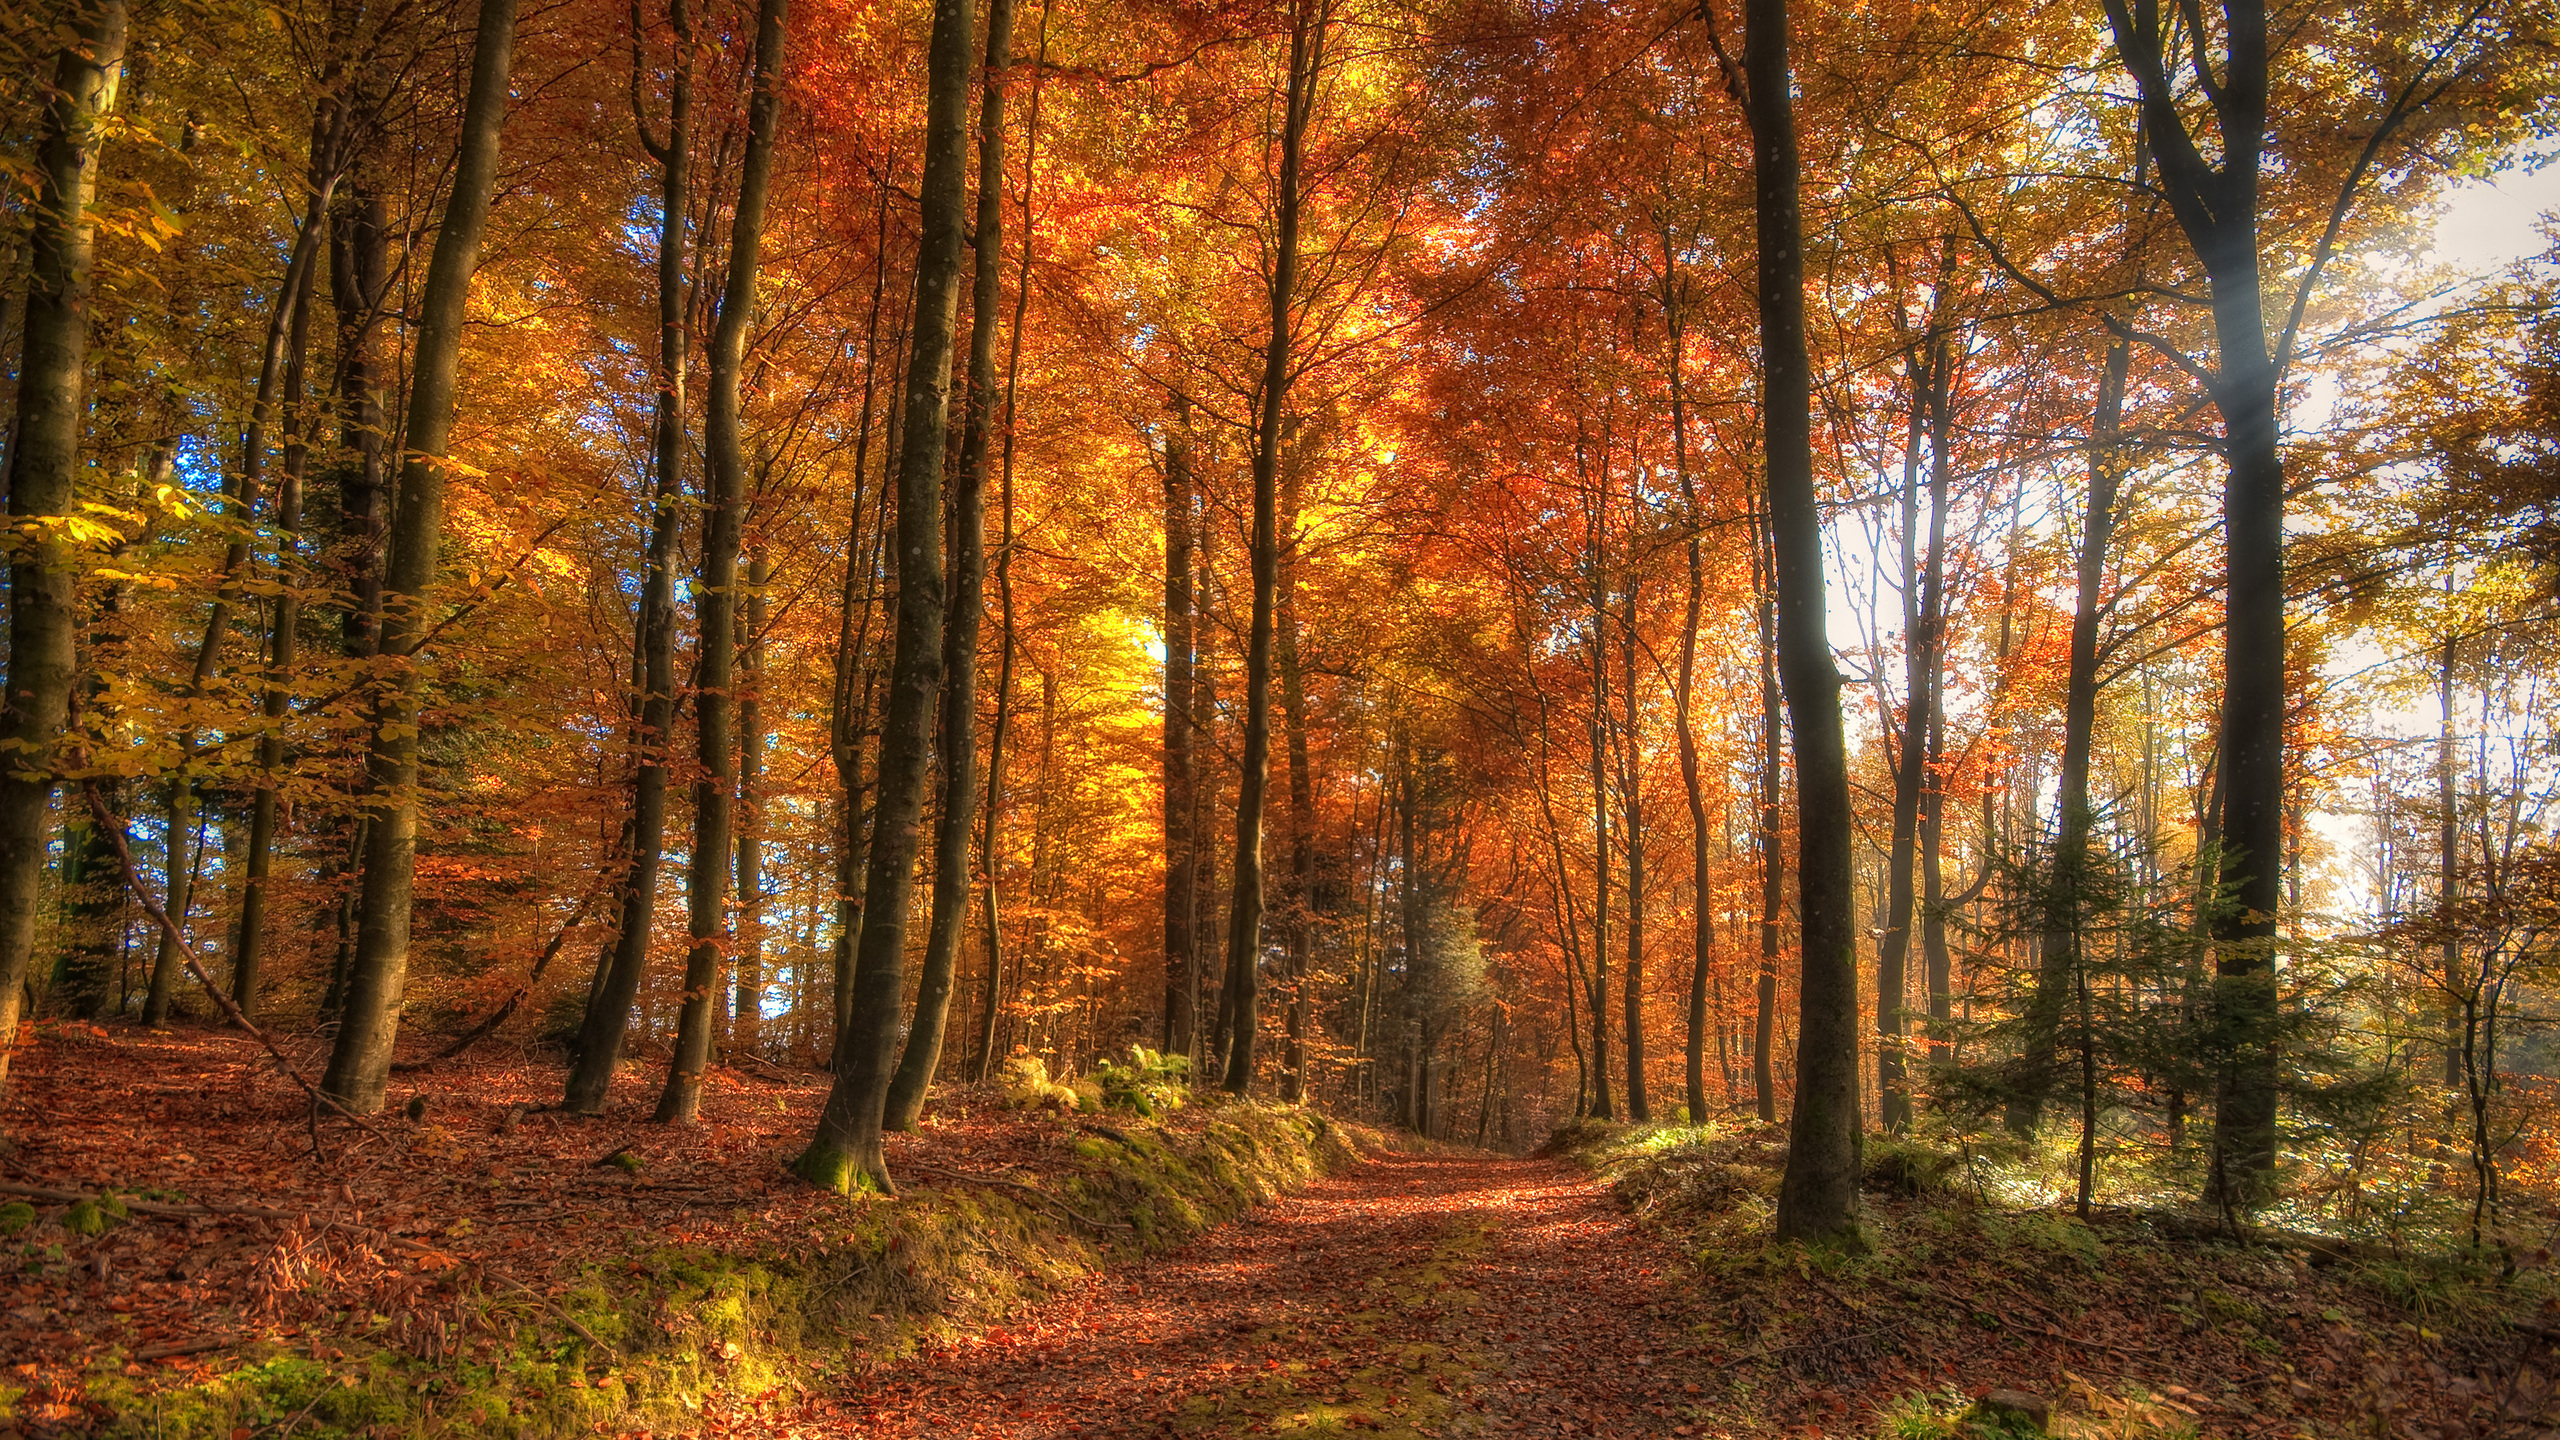 2560x1440 Hdr Autumn Forest Desktop Pc And Mac Wallpaper